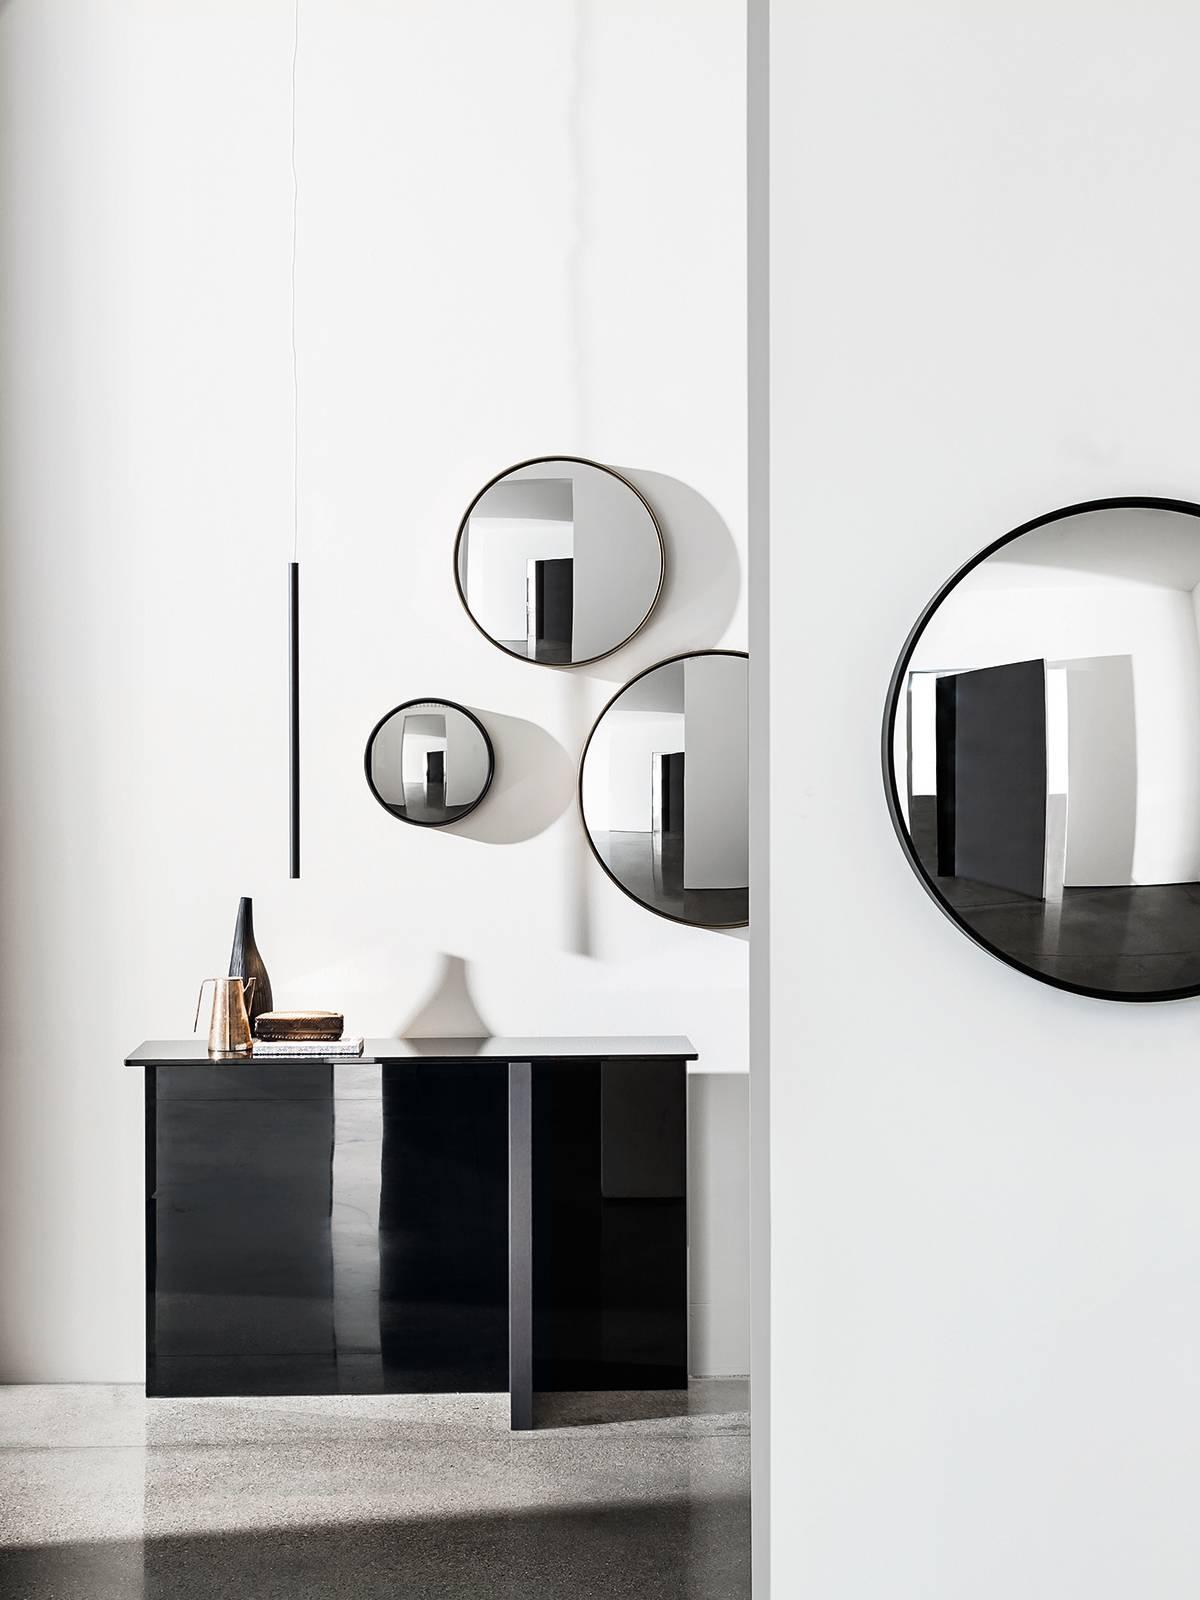 Sail - Decorative Convex Mirror - Small Unique Wall Mounted Mirror. inside Black Convex Mirrors (Image 19 of 25)